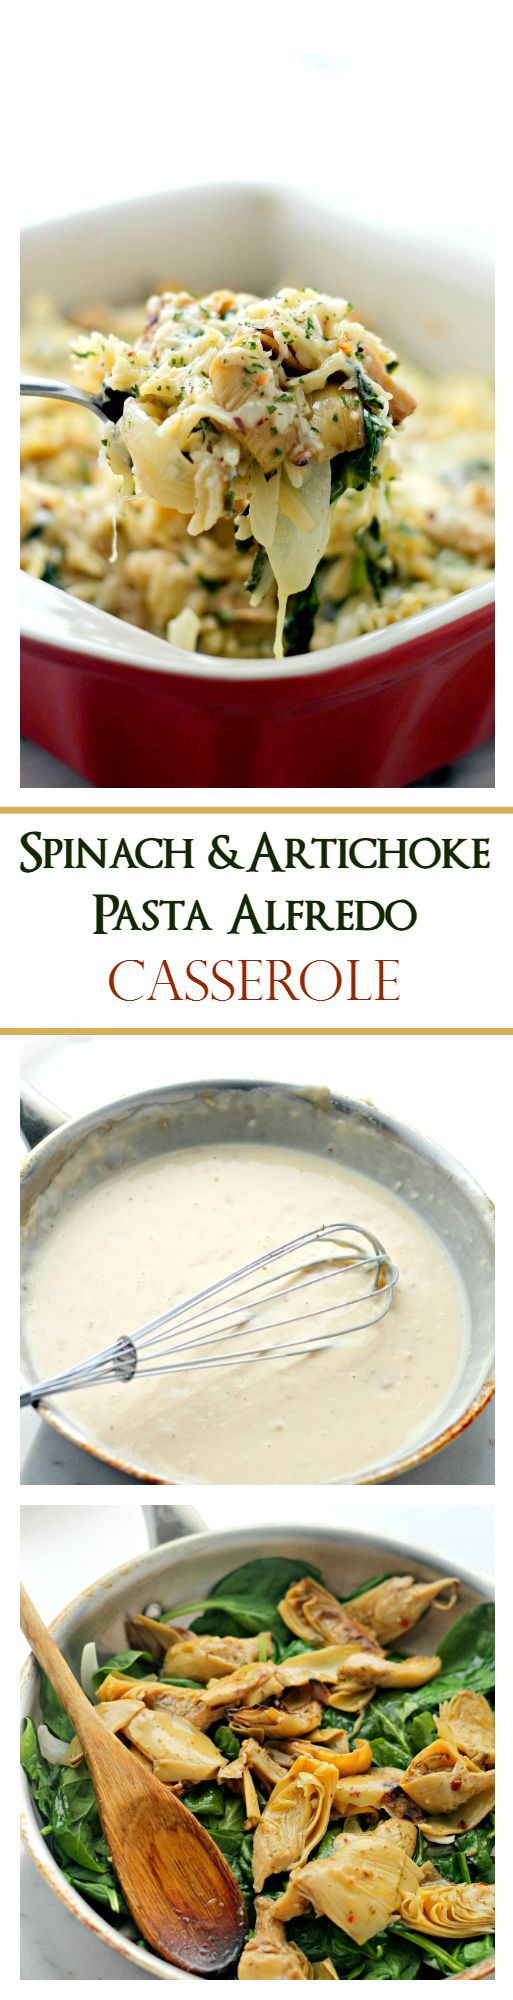 Spinach and Artichoke Pasta Alfredo Casserole | Delicious vegetarian dinner with Spinach, Artichokes and Orzo pasta mixed in a lightened-up, homemade Alfredo Sauce.